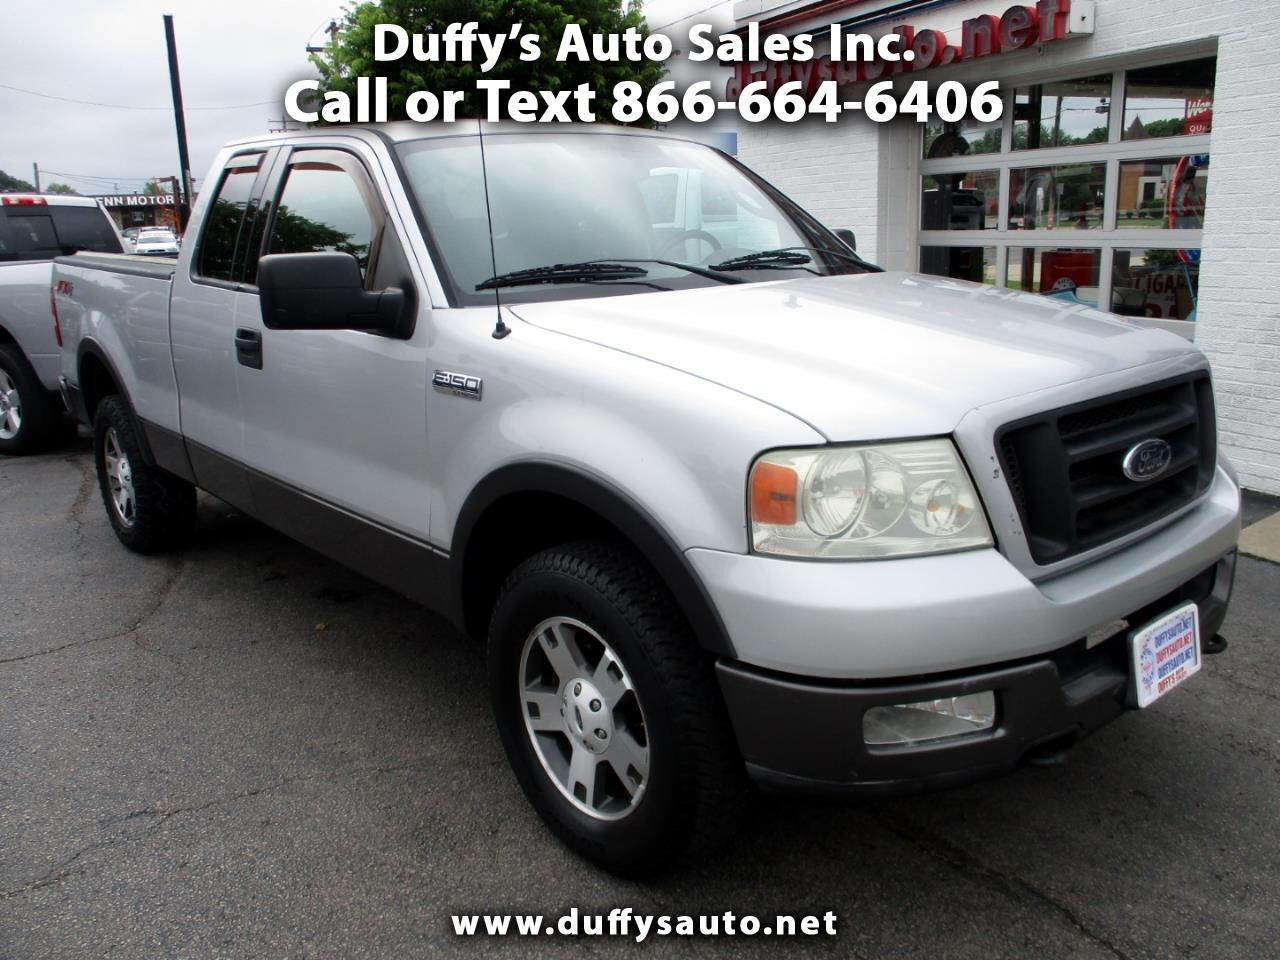 2004 Ford F-150 Supercab FX4 4WD